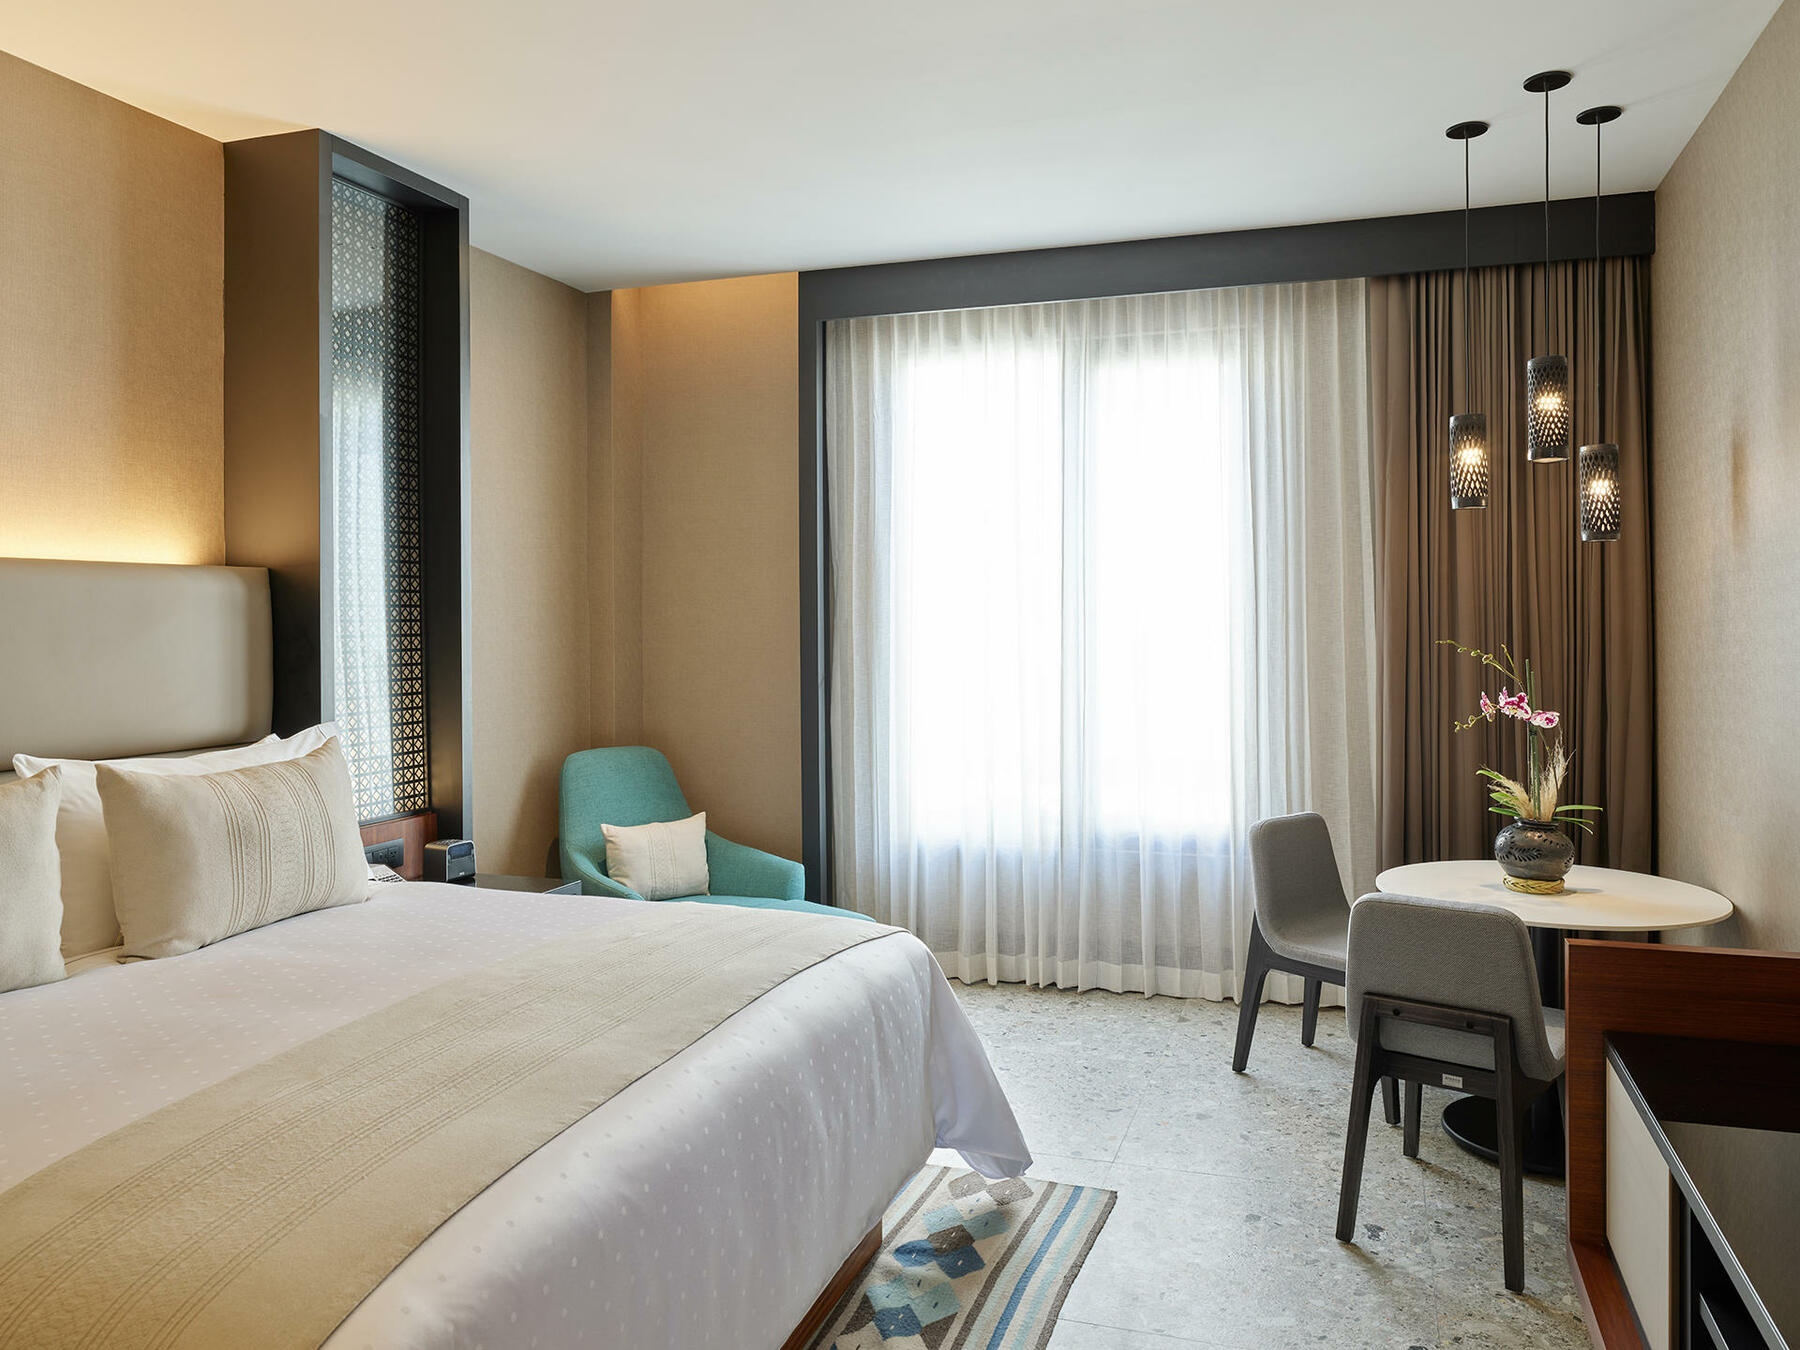 Deluxe room with king bed at Grand Fiesta Americana Oaxaca